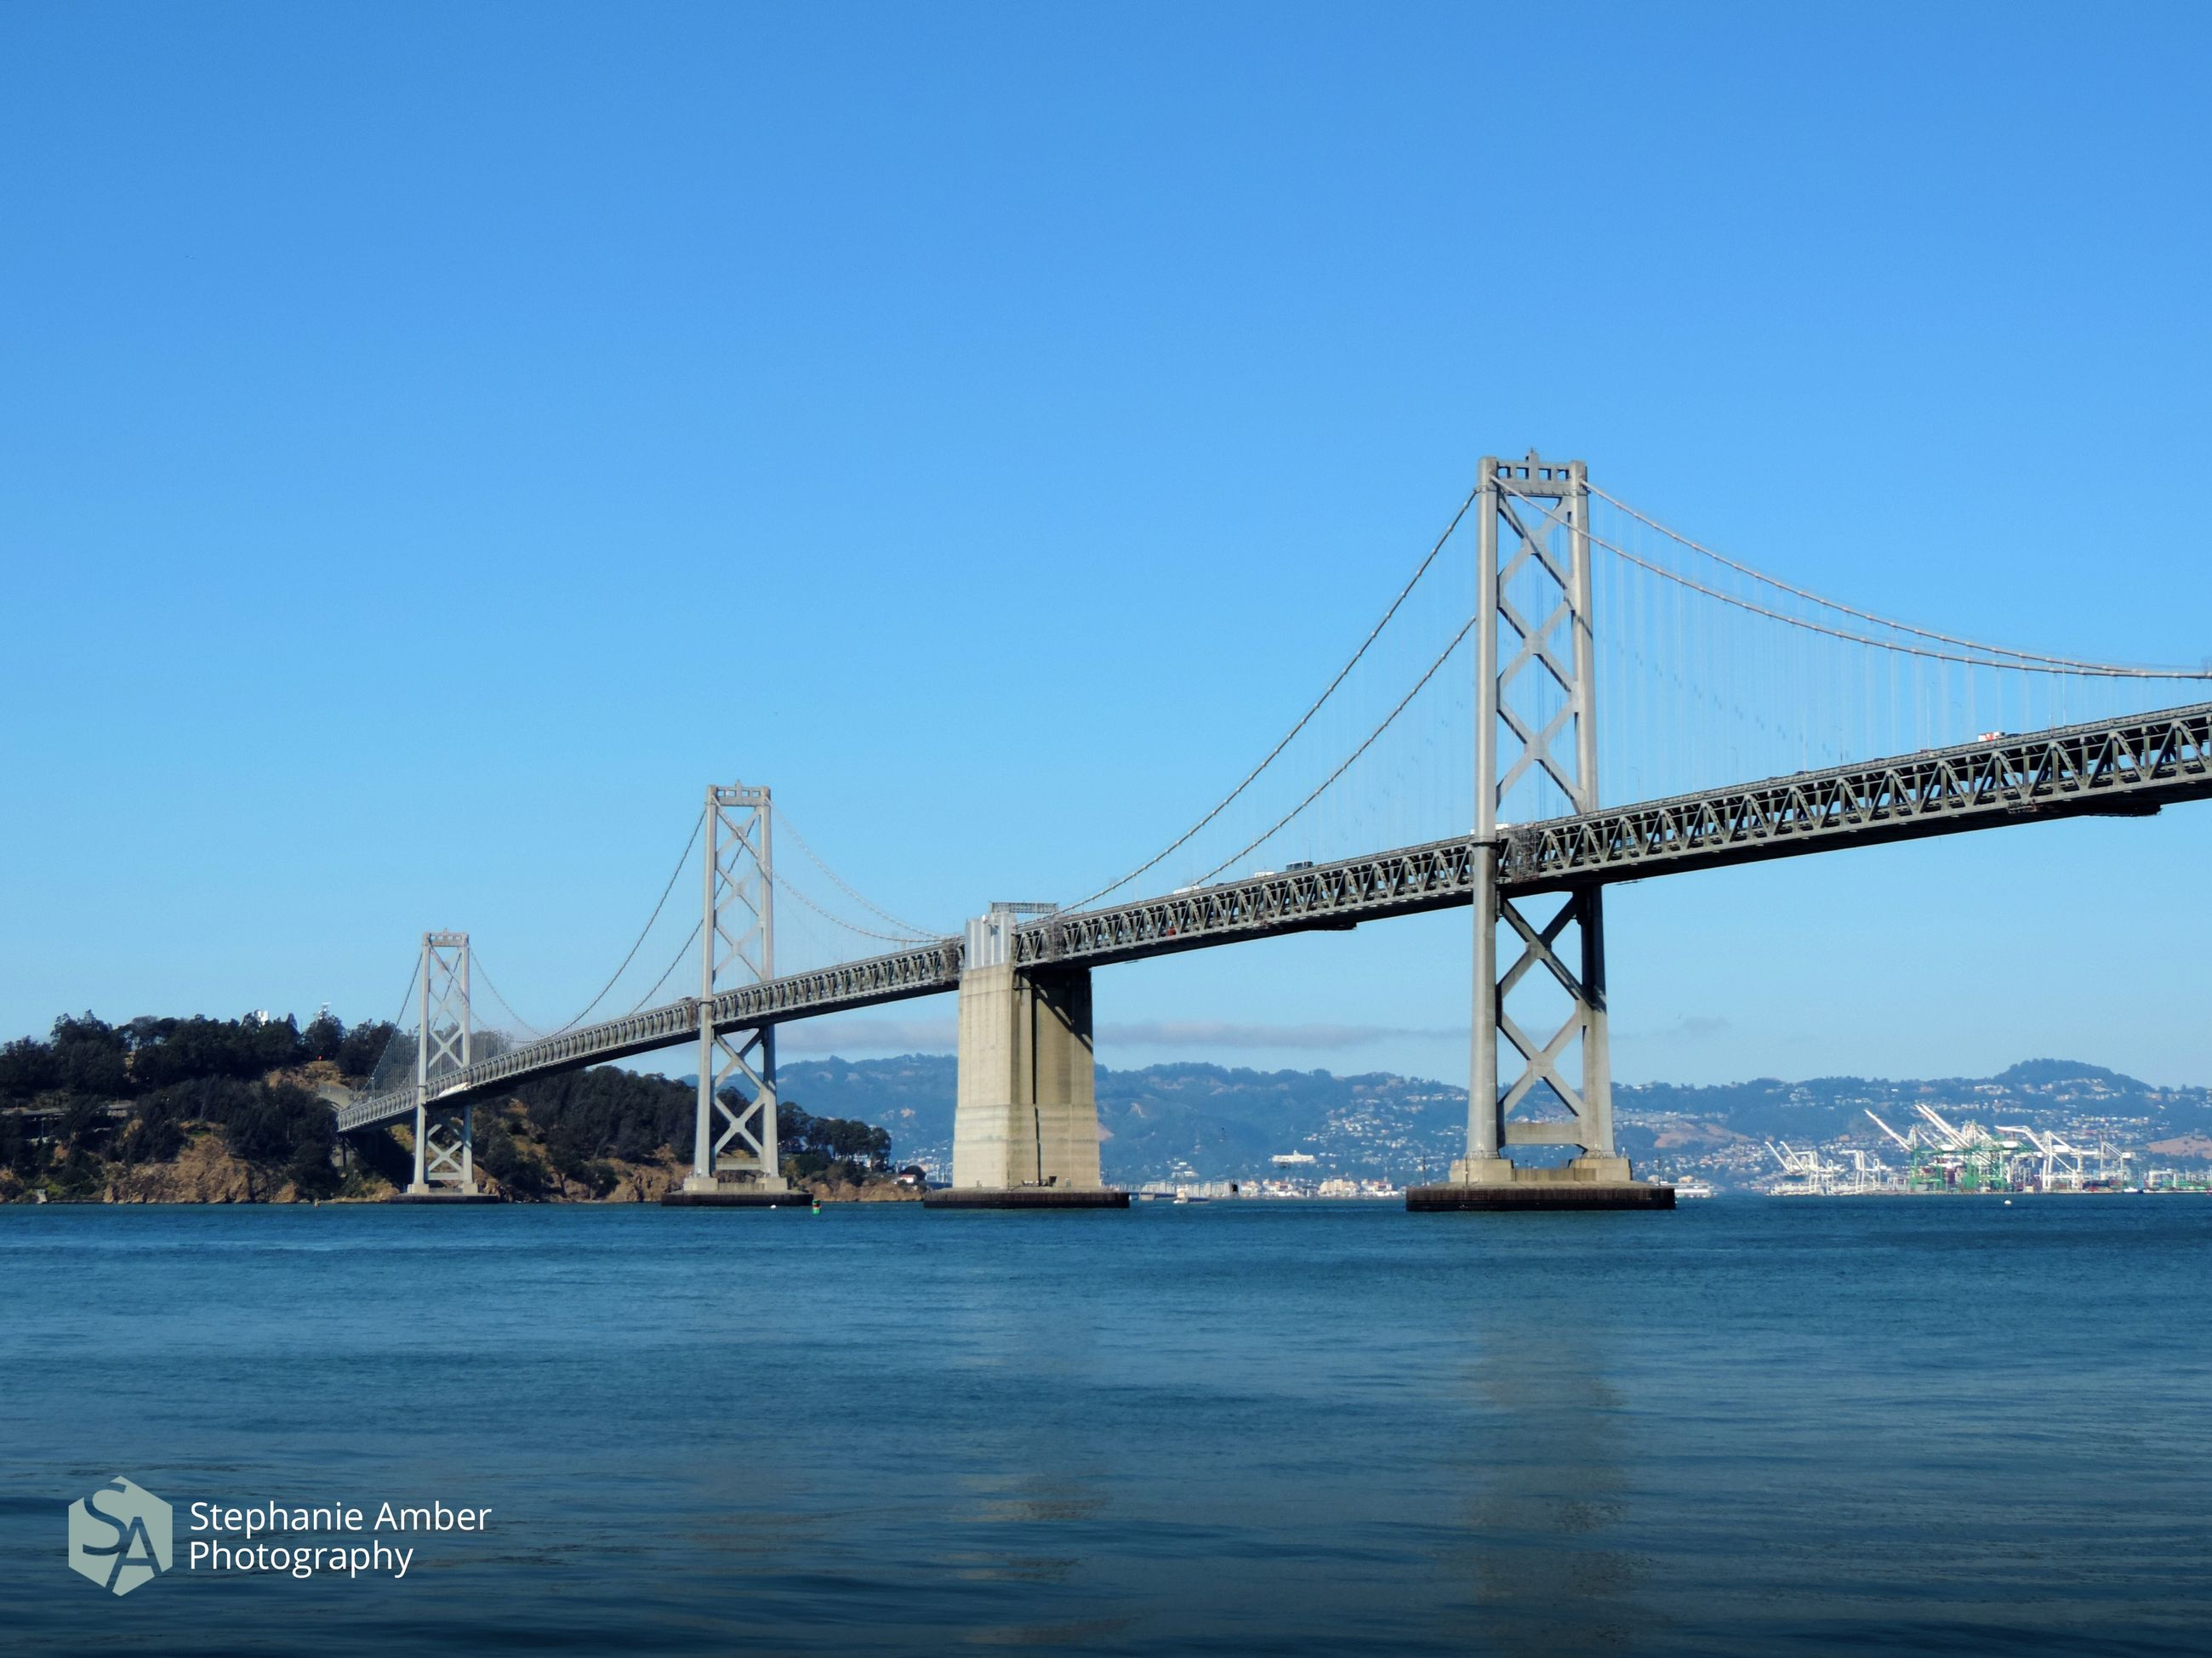 water, connection, built structure, architecture, transportation, bridge, sky, bridge - man made structure, engineering, blue, clear sky, suspension bridge, river, copy space, nature, day, travel destinations, waterfront, outdoors, bay, long